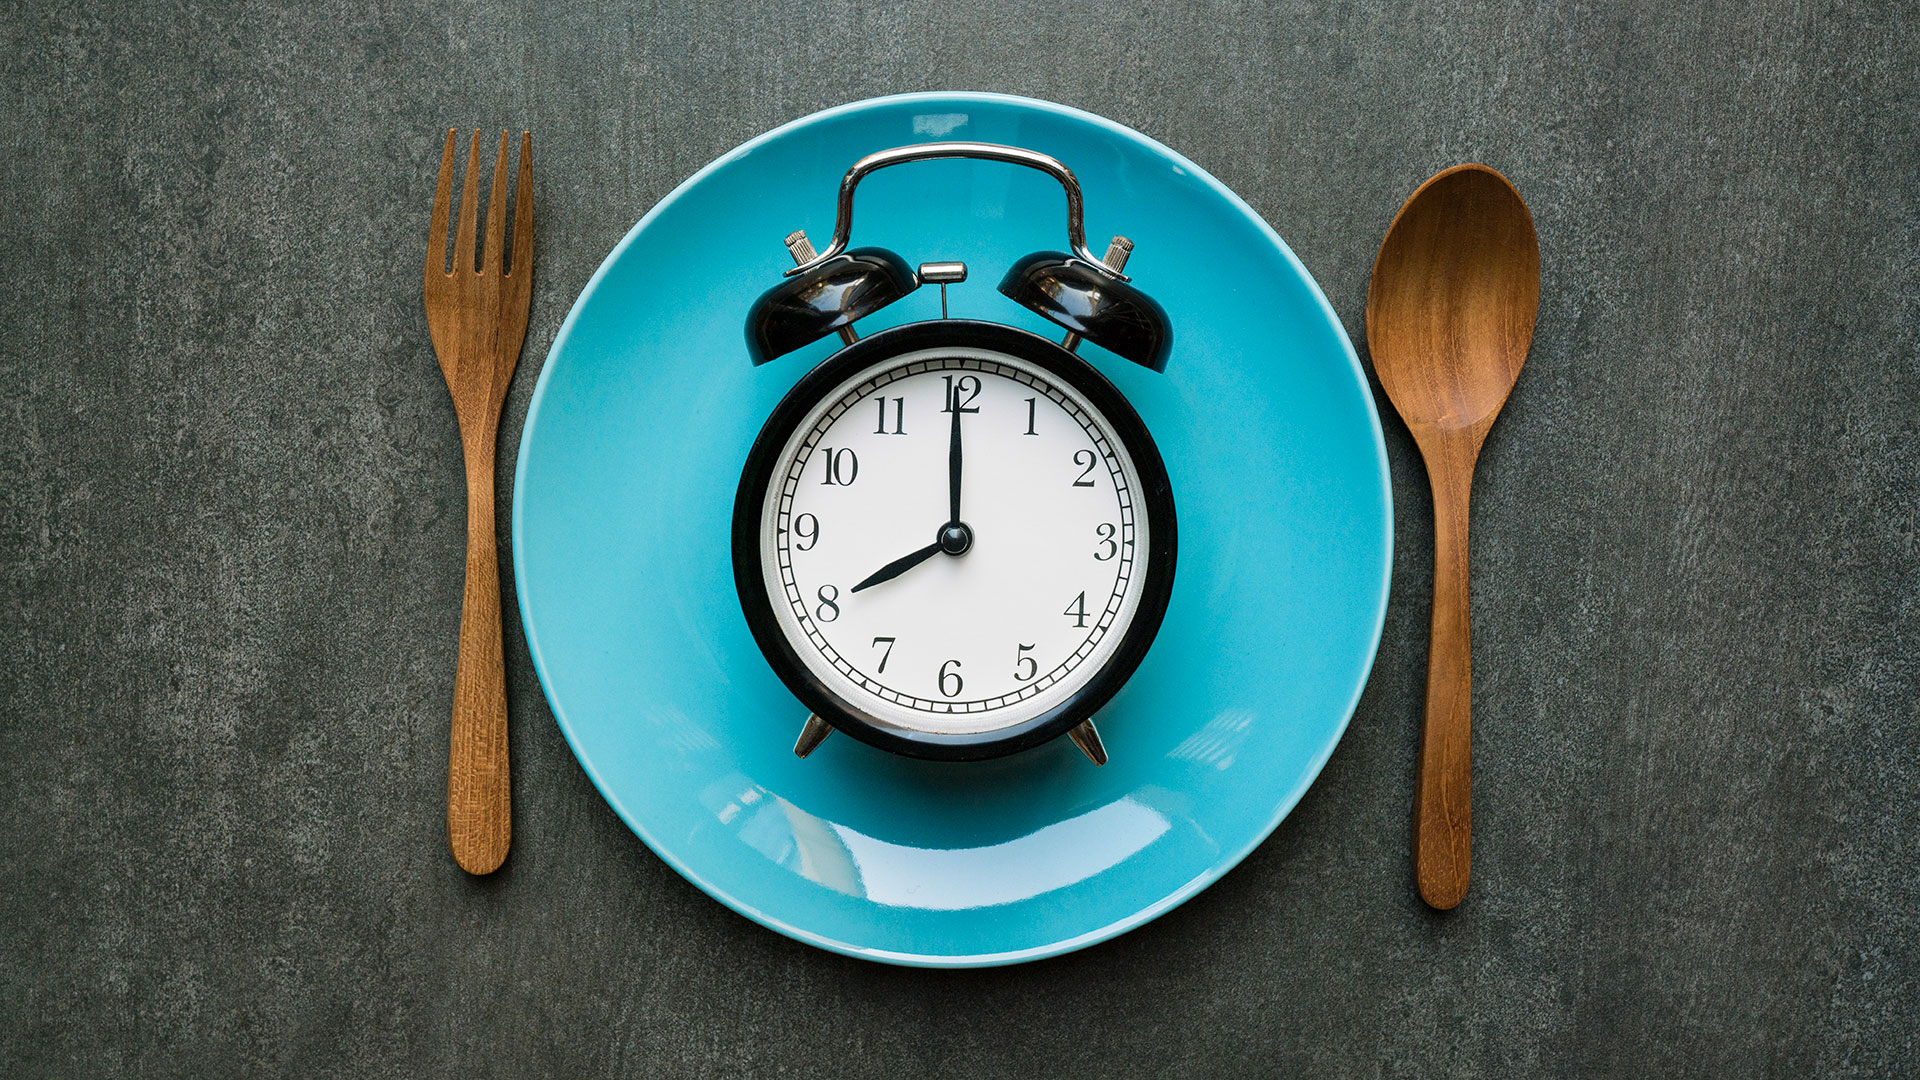 What Are The Practical Tips On Intermittent Fasting?